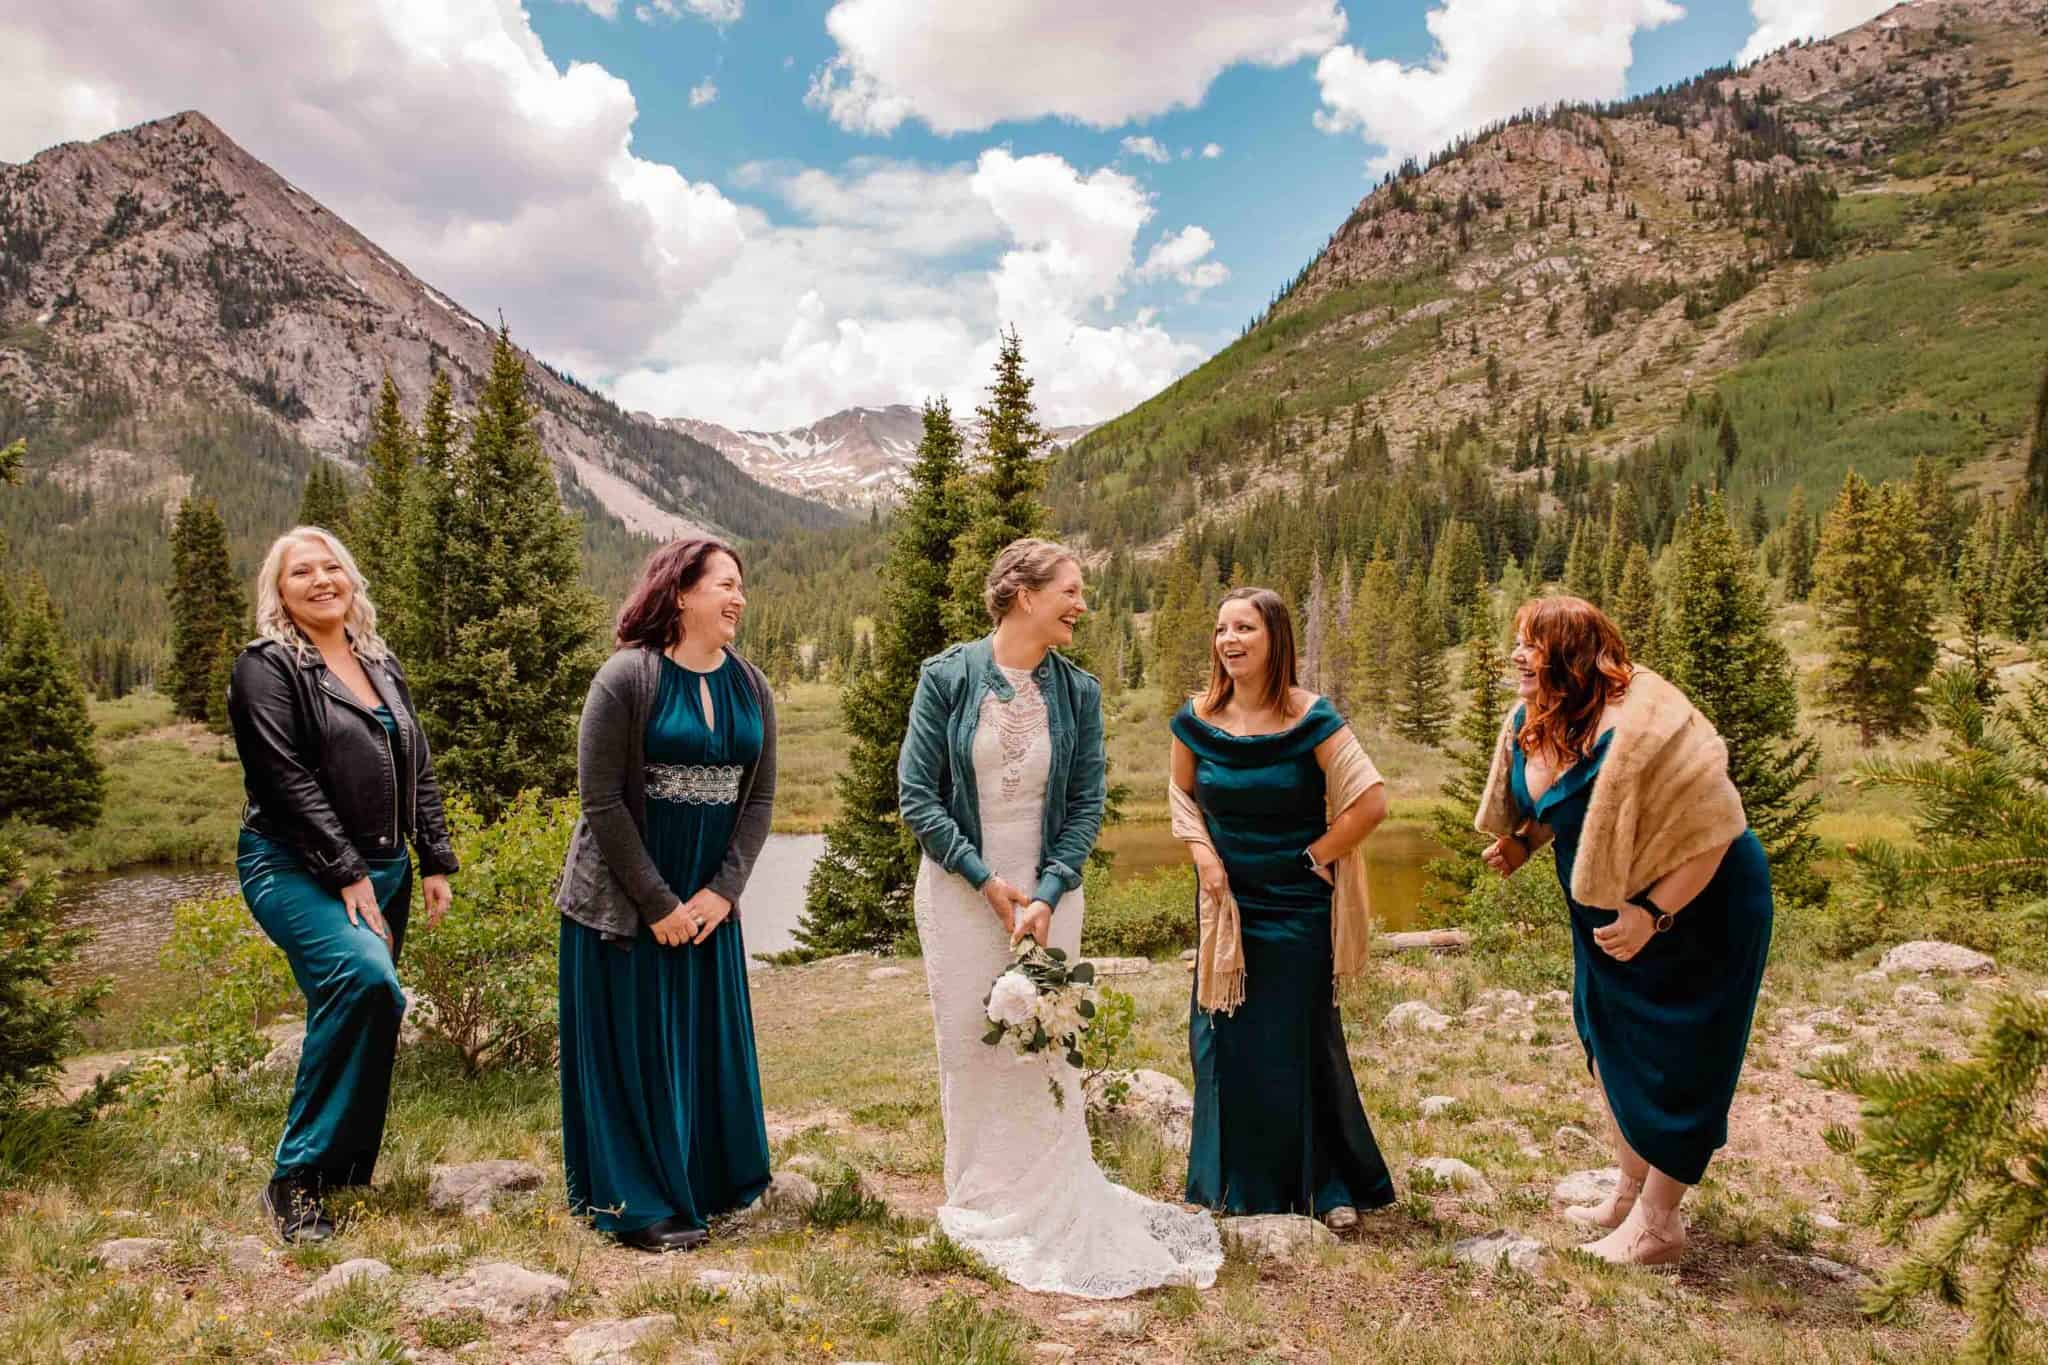 bride and her best friends at her elopement having them come to make her elopement feel special